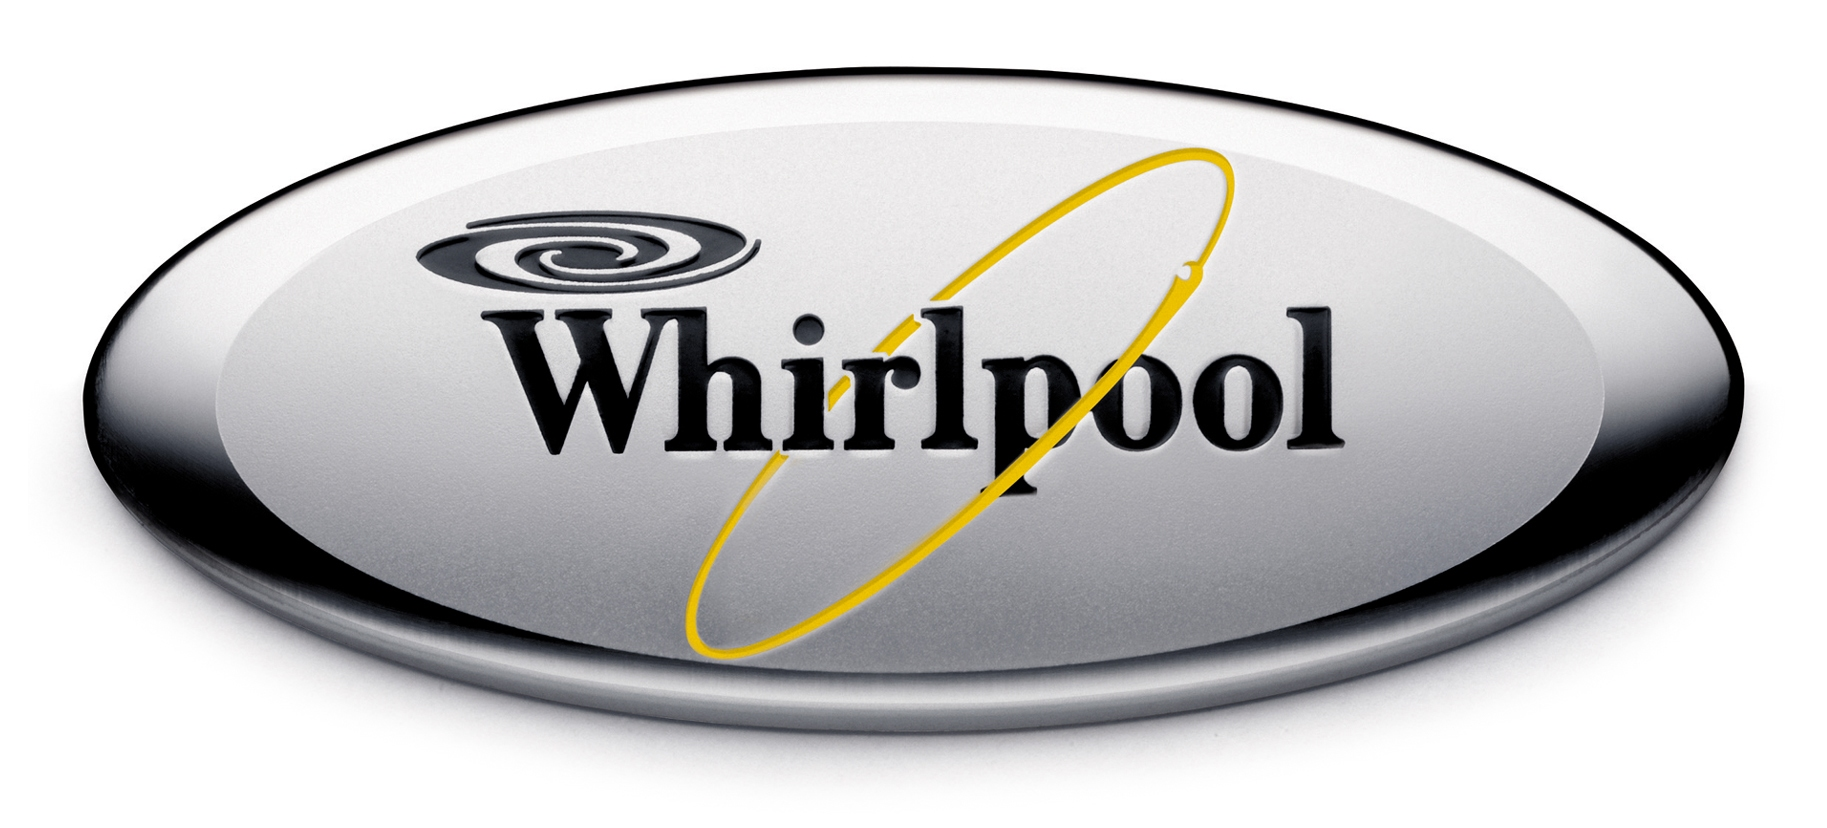 Whirlpool Customer Care Services- Akosha